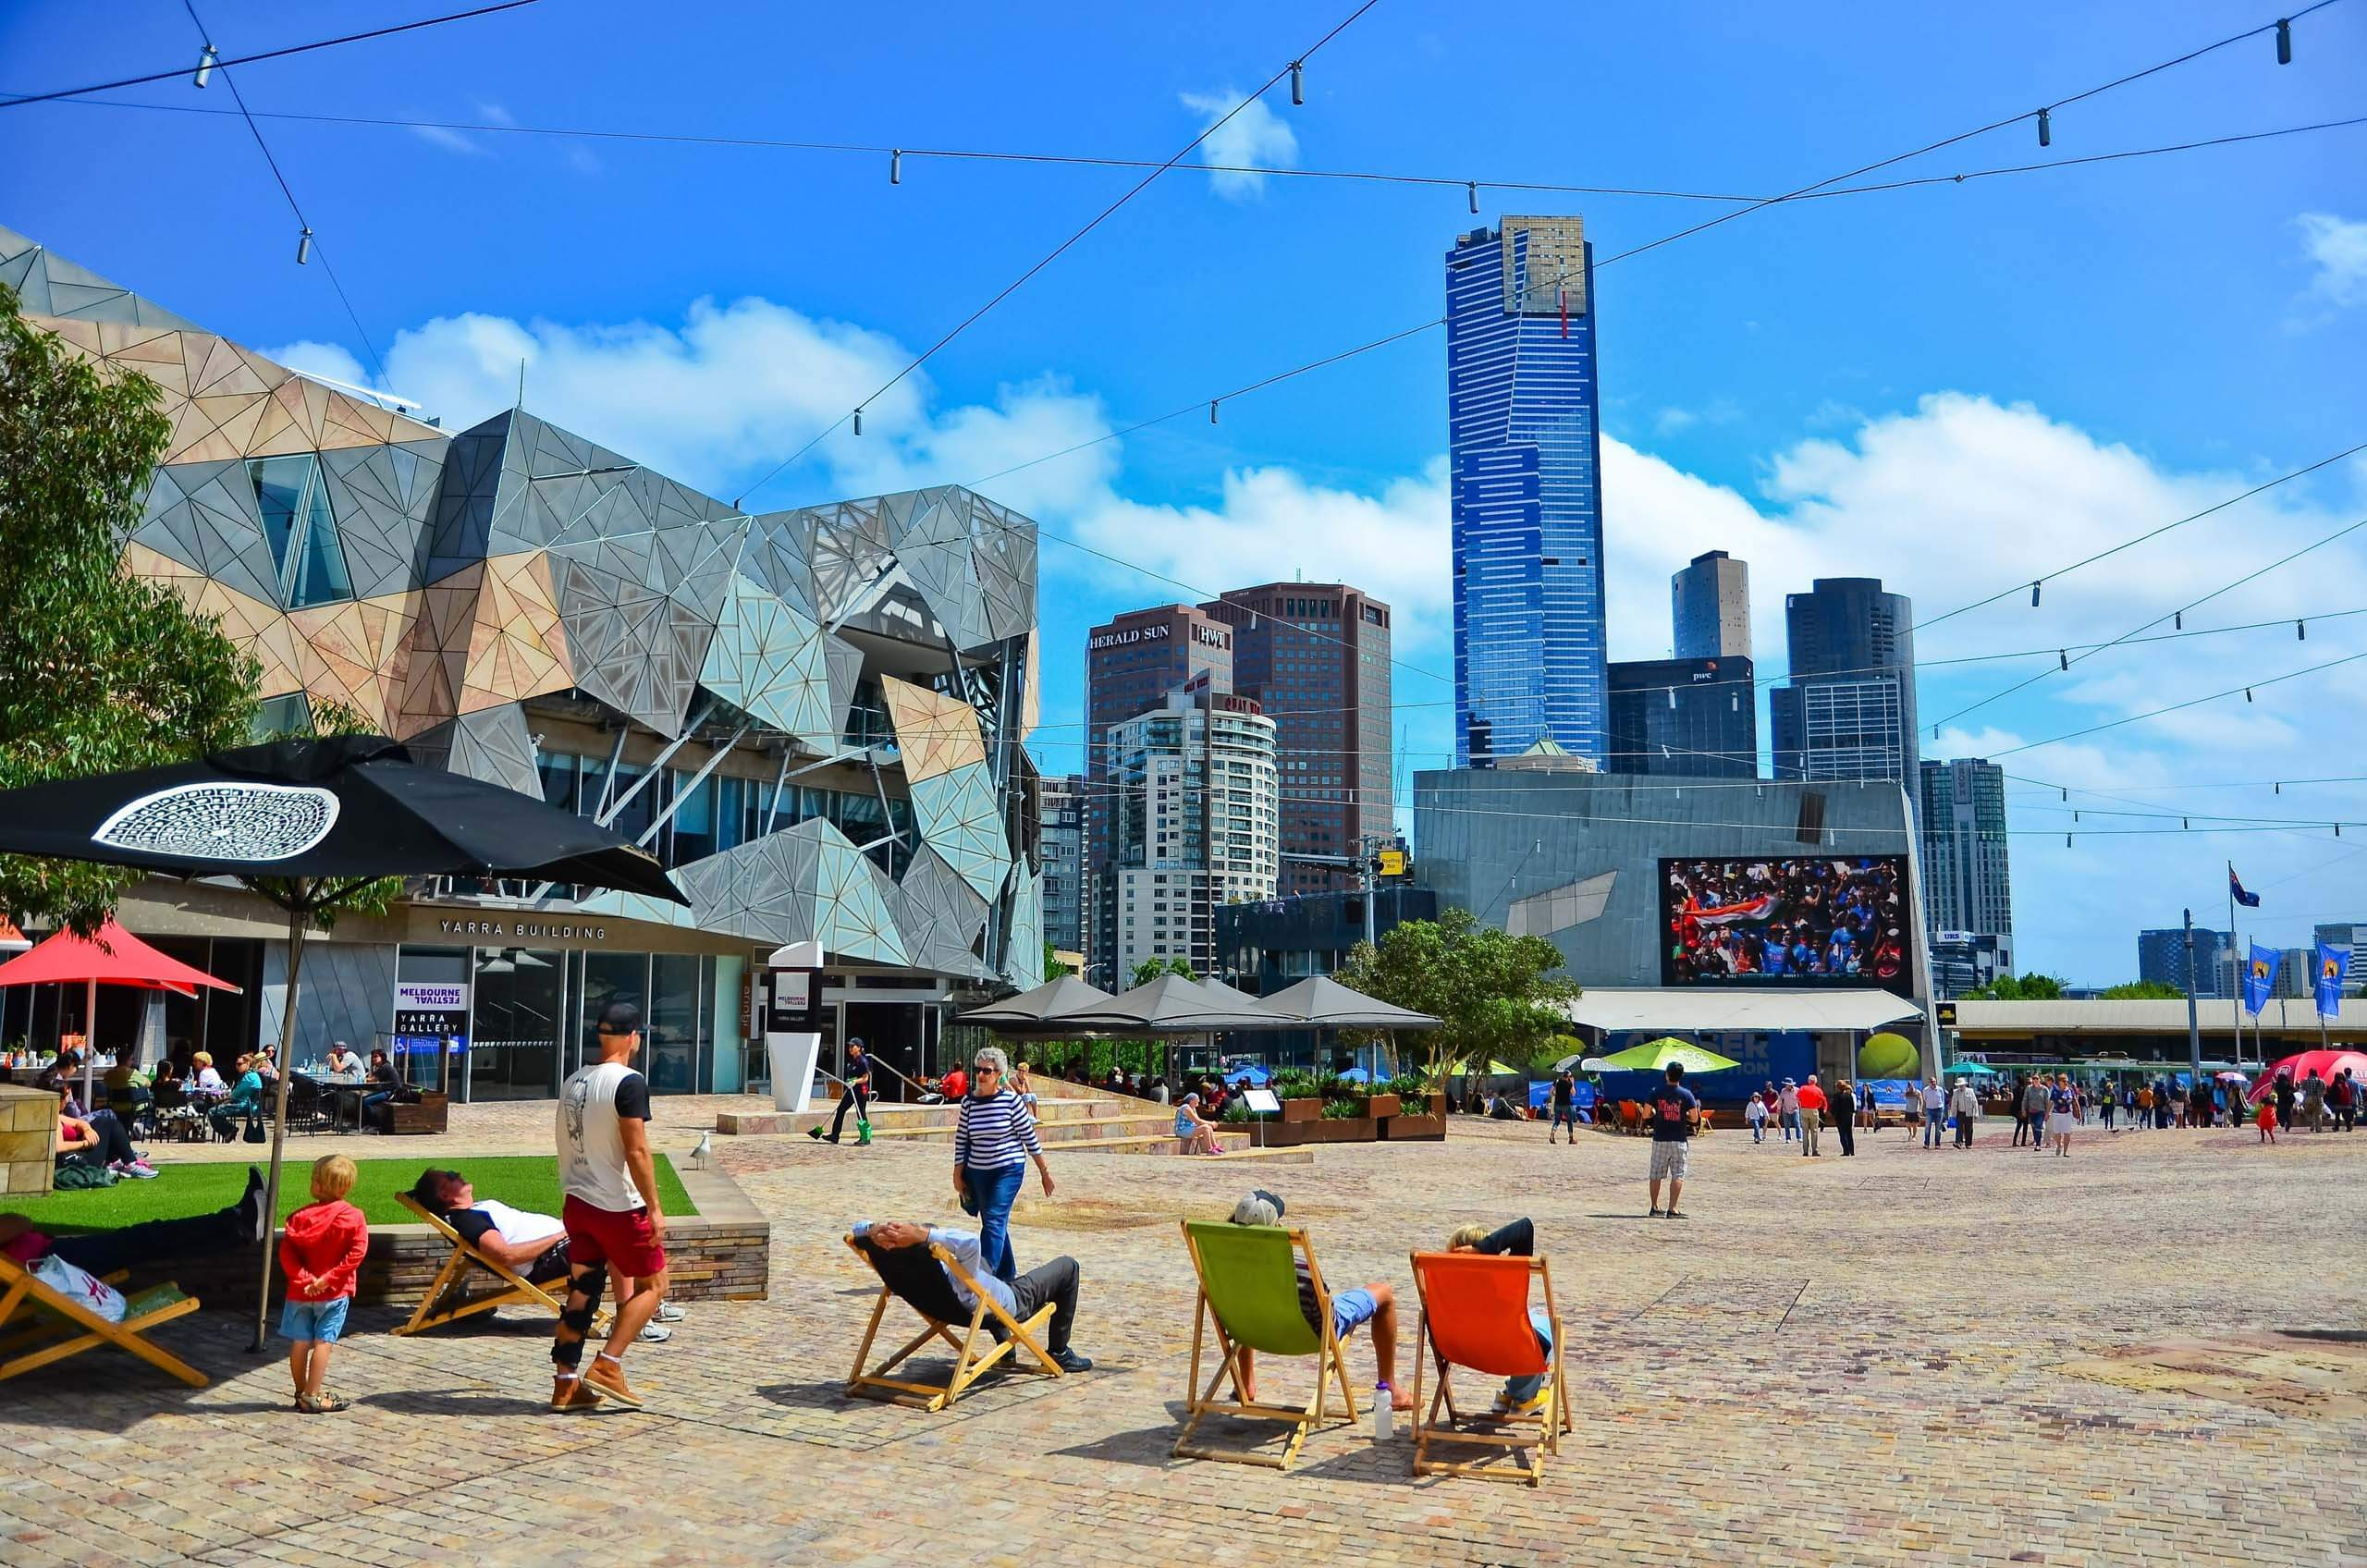 People sitting on deck chairs at Federation Square